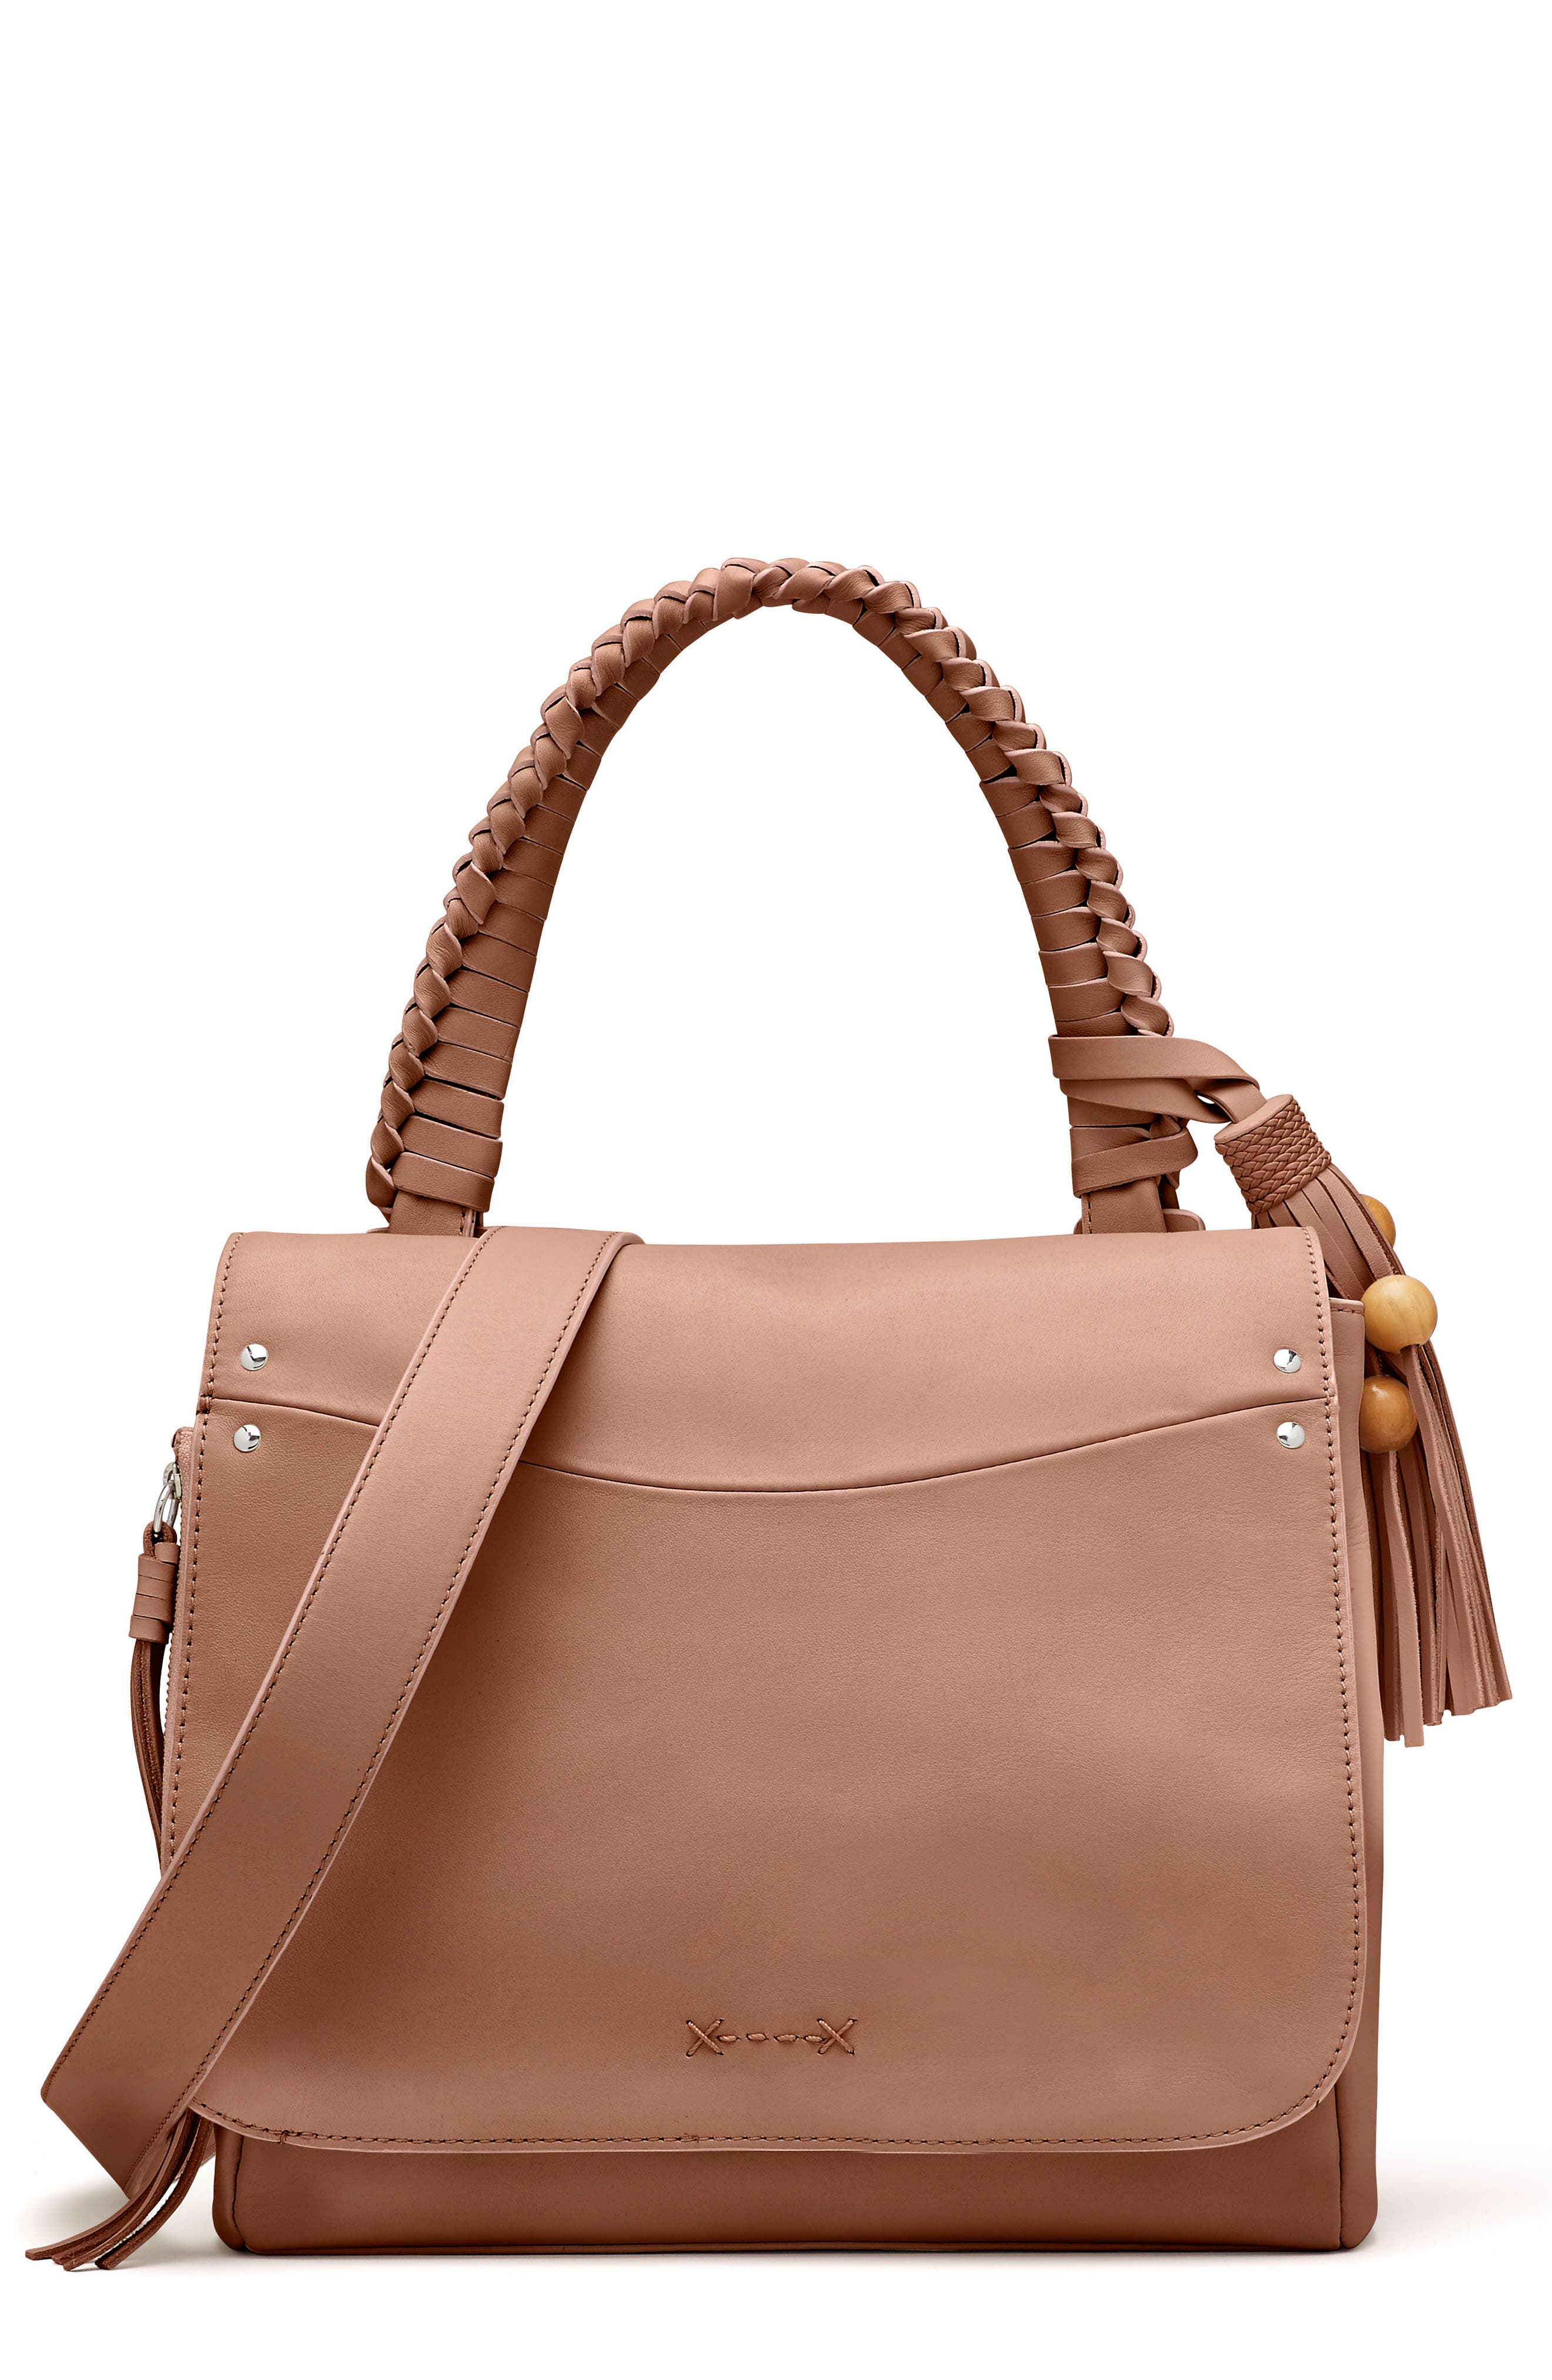 Main Image - Elizabeth and James Trapeze Leather Top Handle Satchel